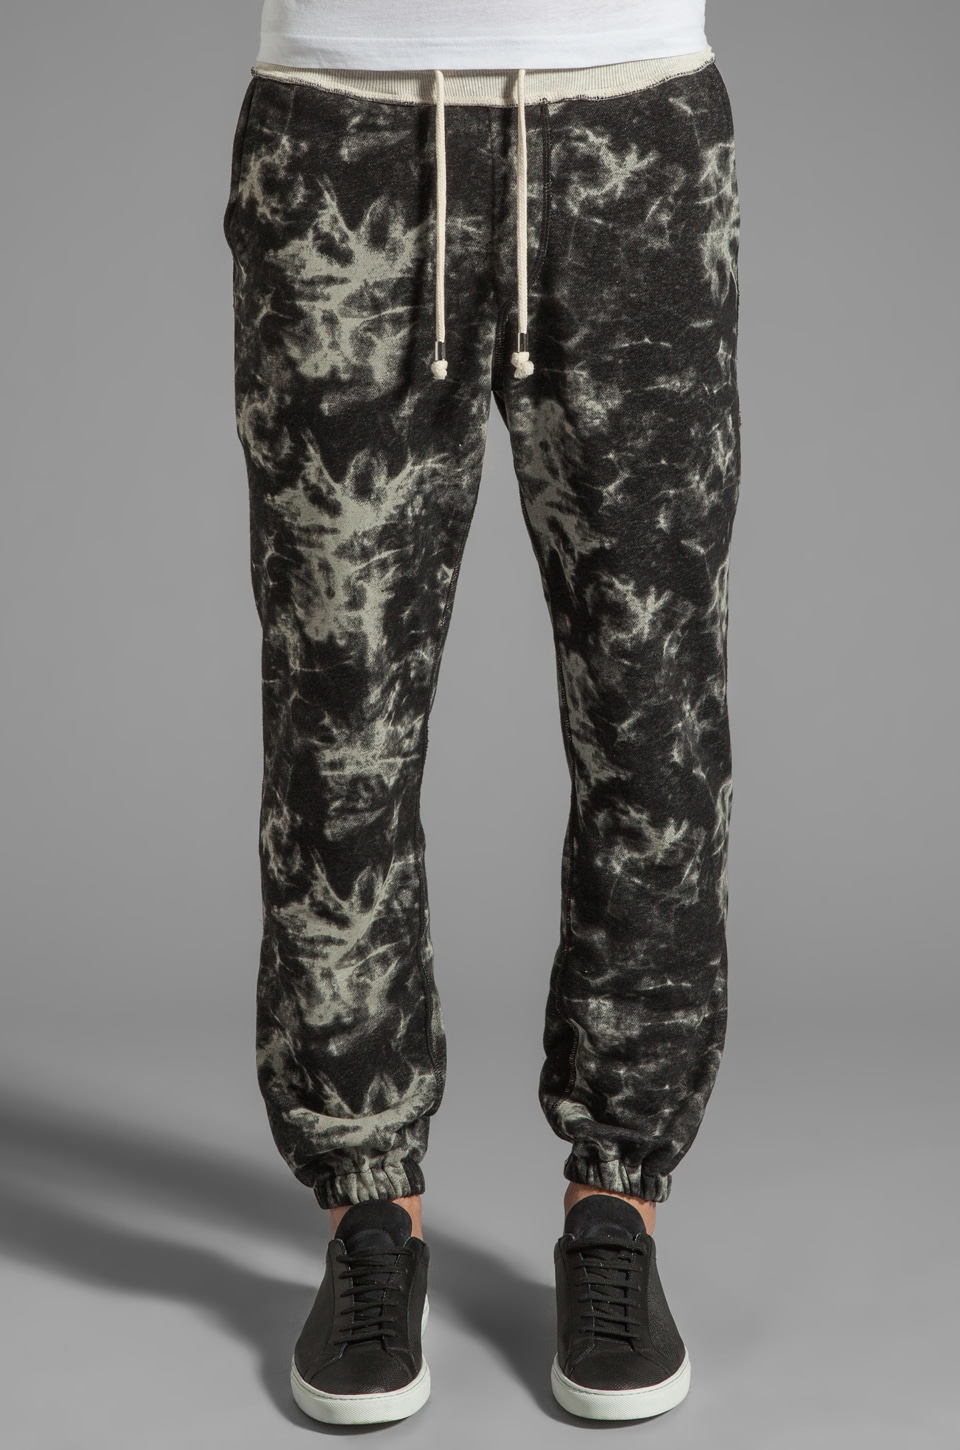 Shades of Grey by Micah Cohen Casual Sweatpant in Blackwater Tie-Dye